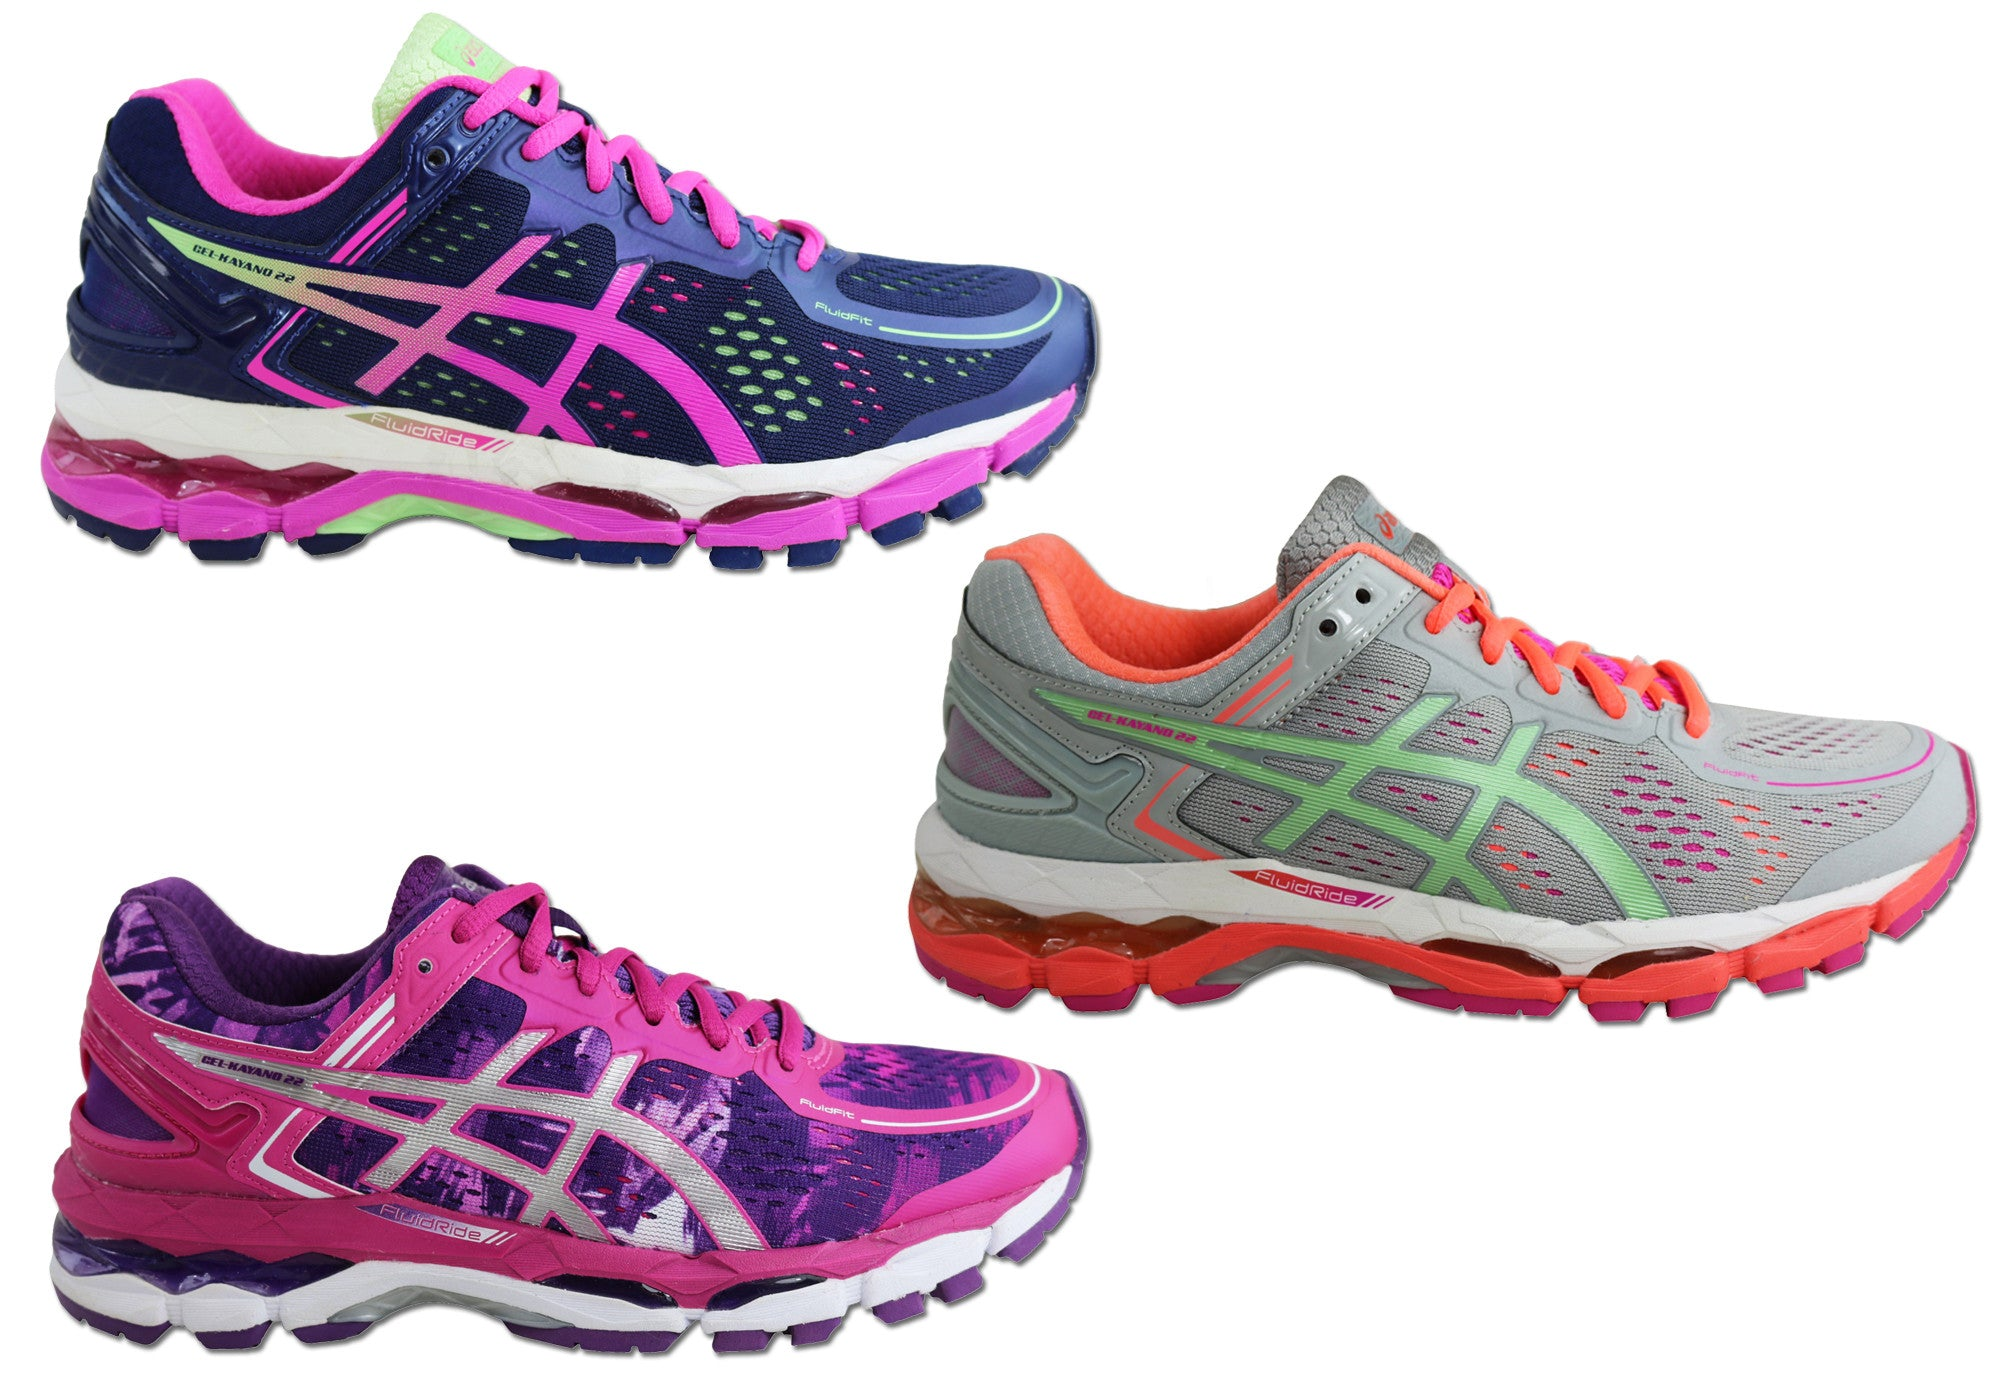 new asics womens gel kayano 22 premium cushioned shoes ebay. Black Bedroom Furniture Sets. Home Design Ideas